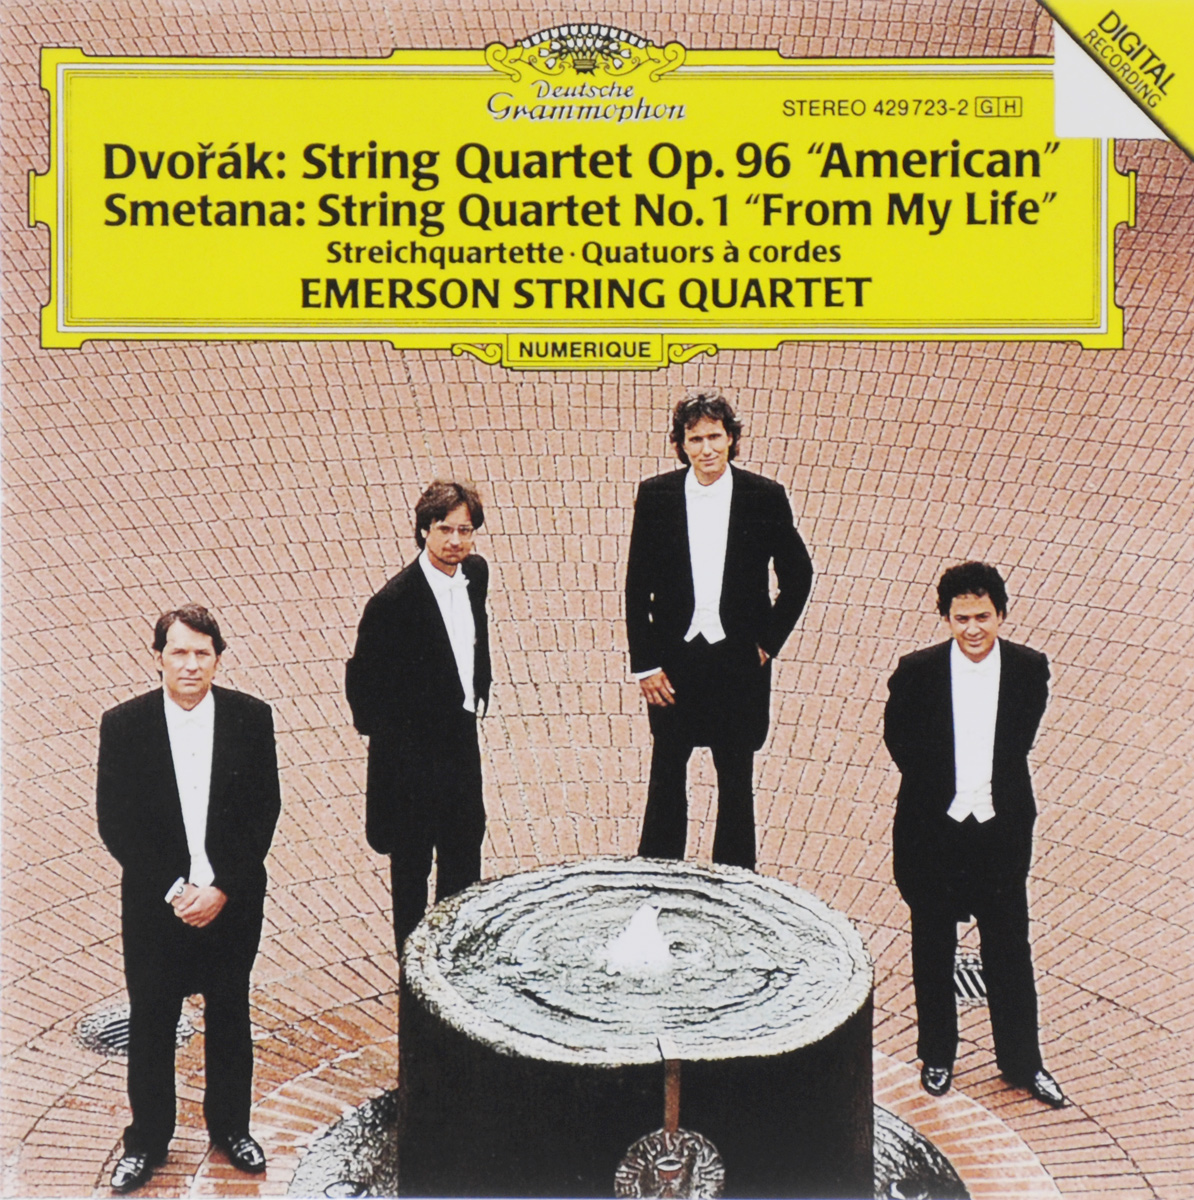 Emerson String Quartet Emerson String Quartet. String Quartet Op. 96 American / String Quartet No. 1 From My Life вентилятор сима ленд 12v 2856853